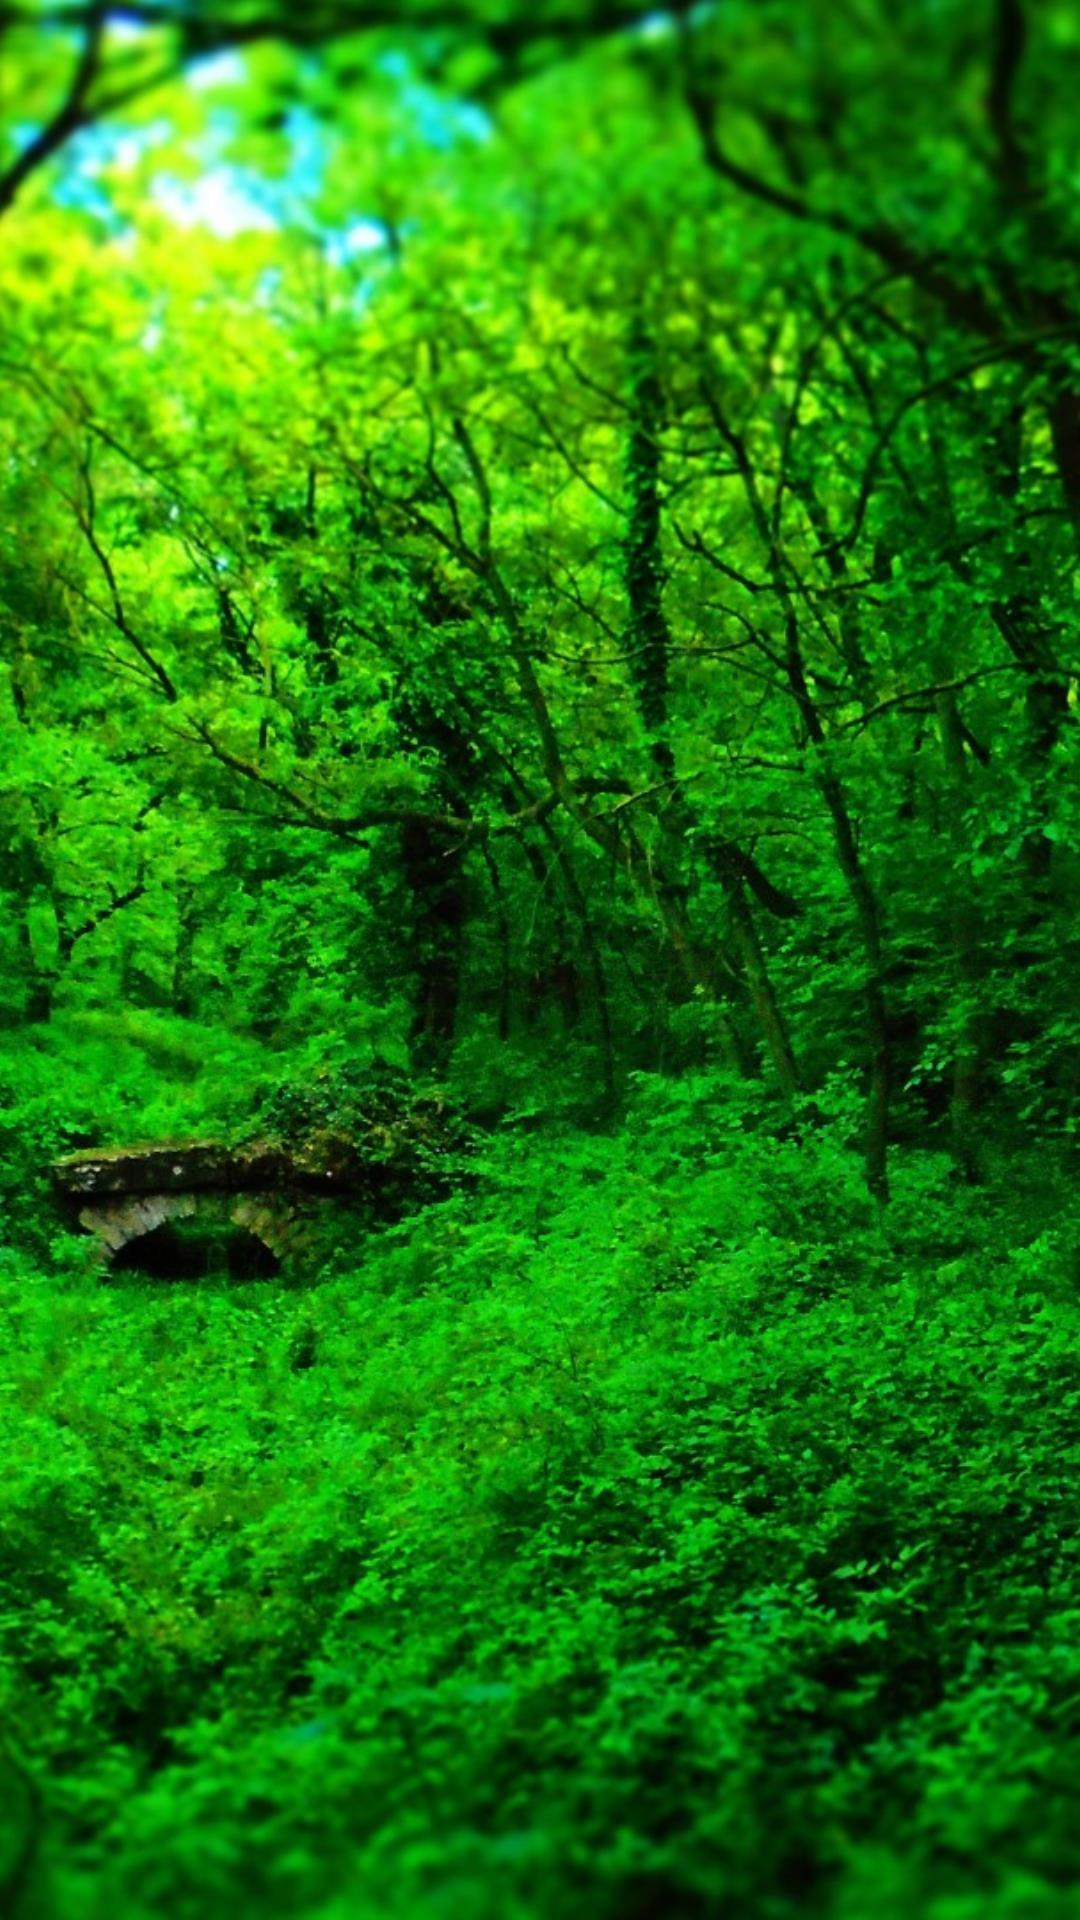 Forest background HD wallpaper for Android - APK Download